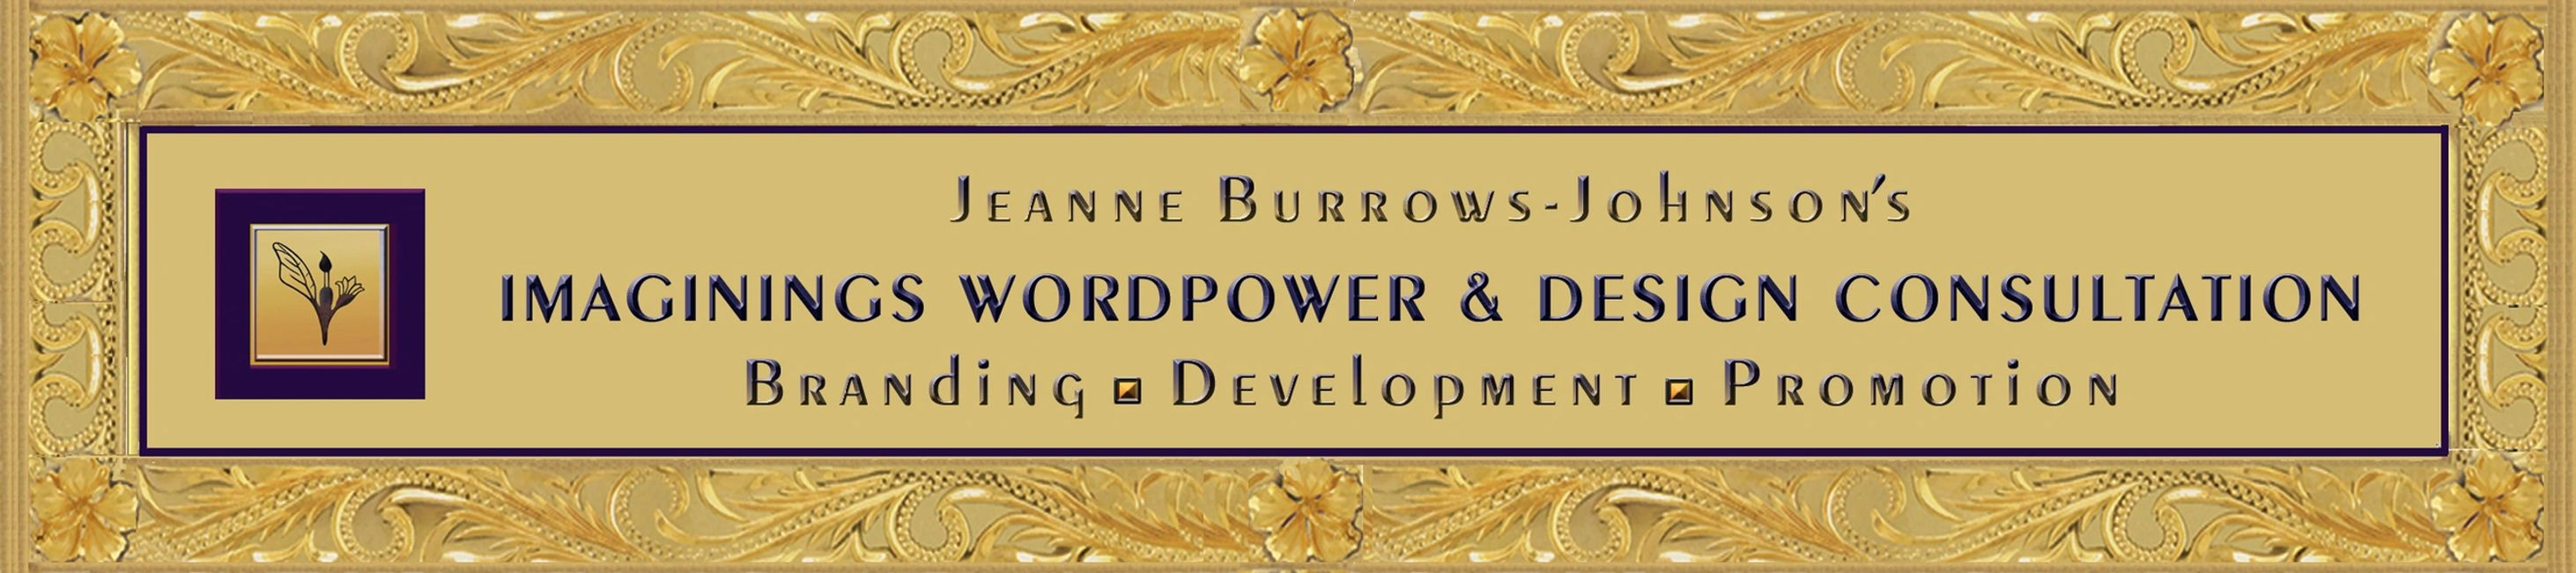 Imaginings' Banner...Jeanne Burrows-Johnson's Imaginings Wordpower & Design Consultation